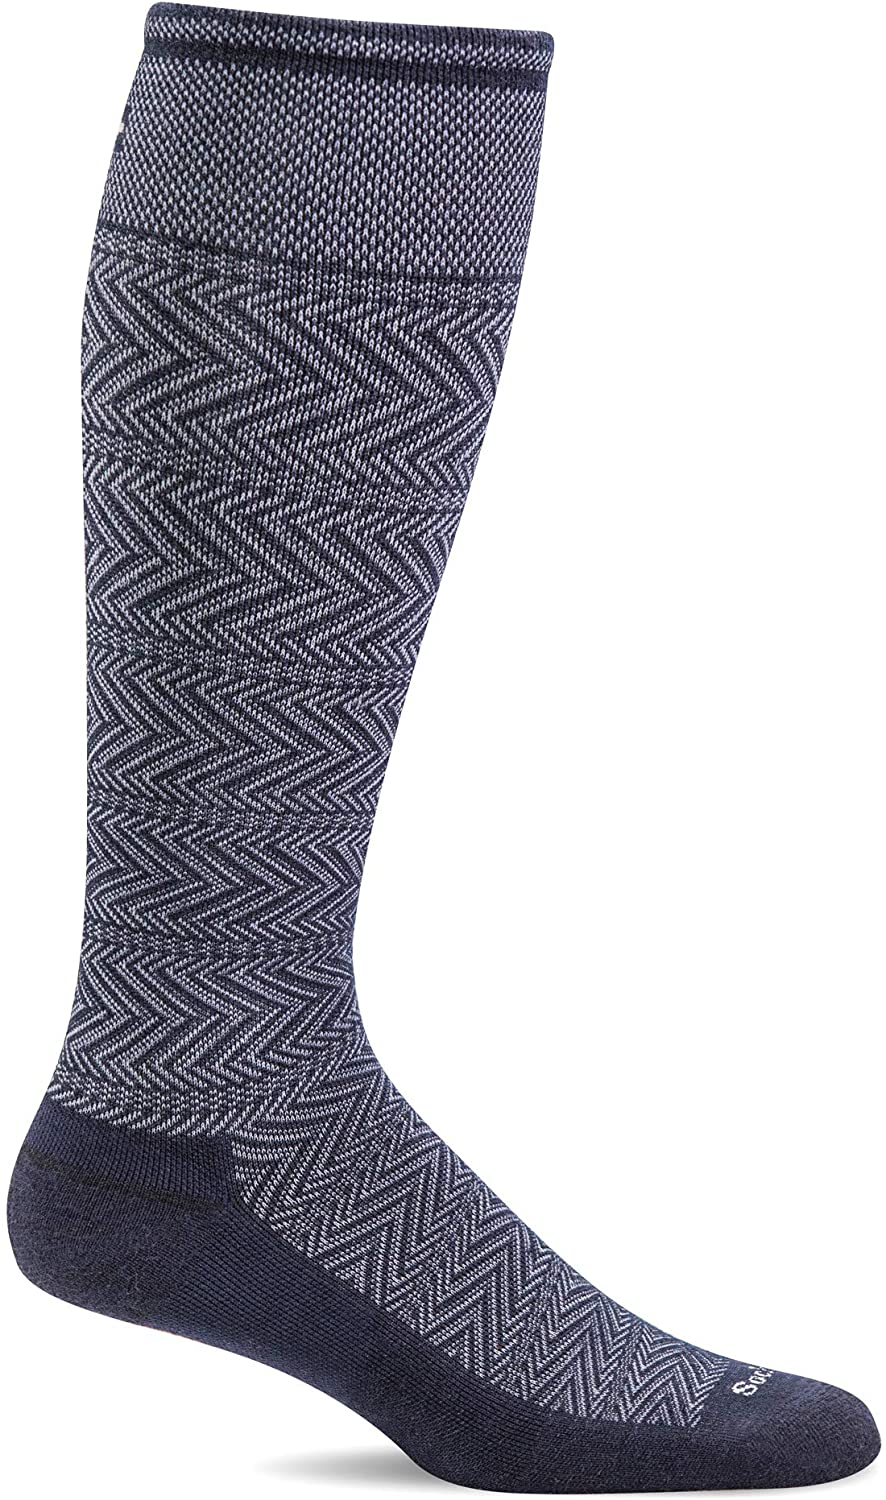 Sockwell Men's Chevron Twill Firm Graduated Compression Sock in Navy from the side